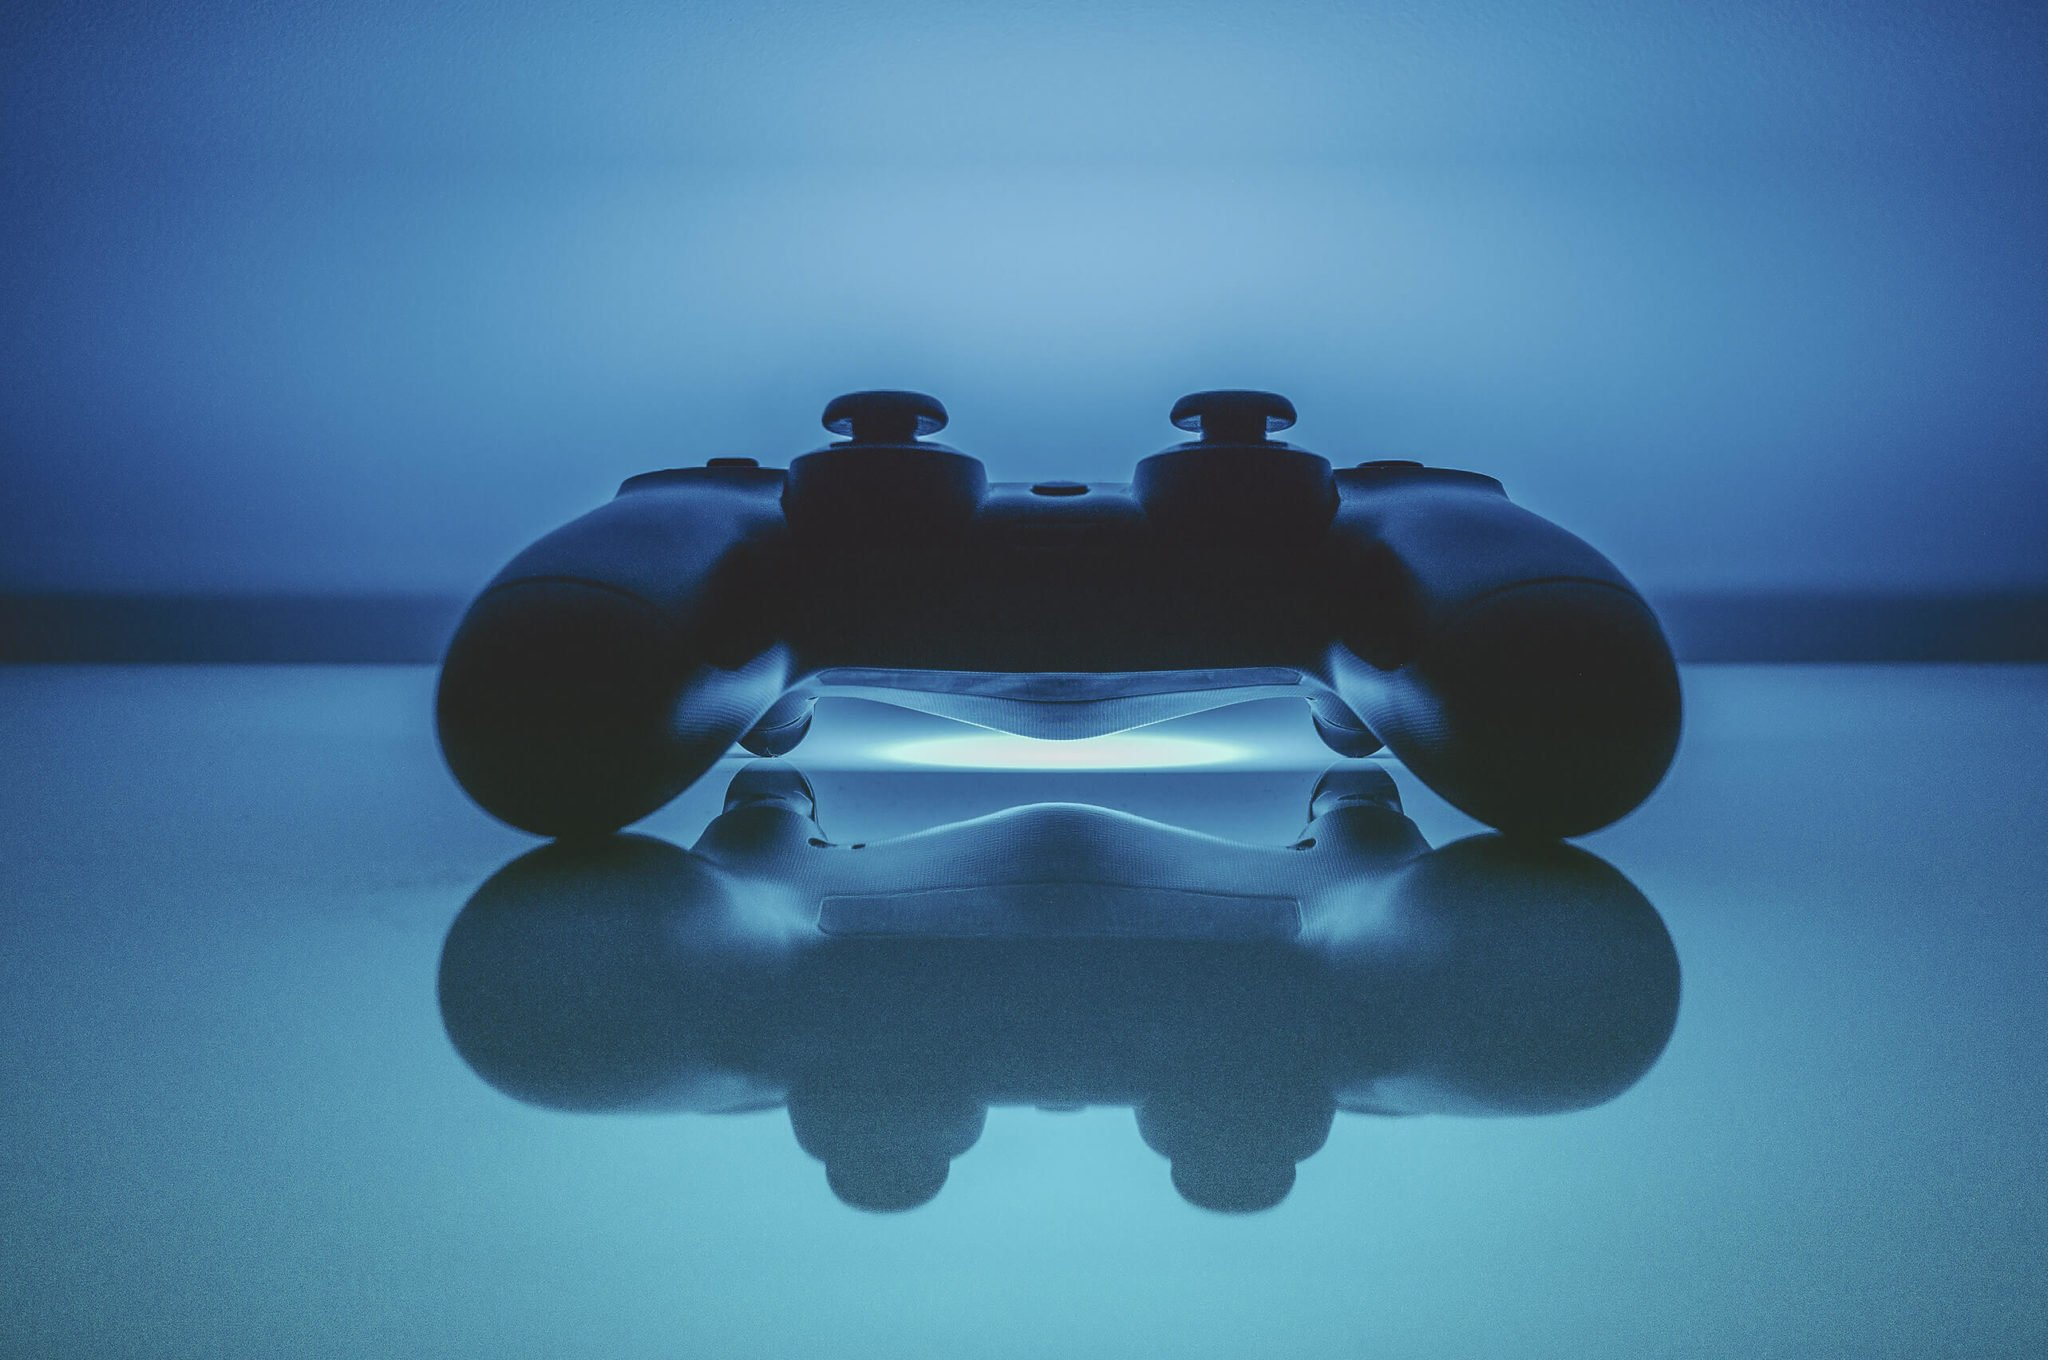 ¿Qué diferencias hay entre gamificación (gamification) y advergaming?